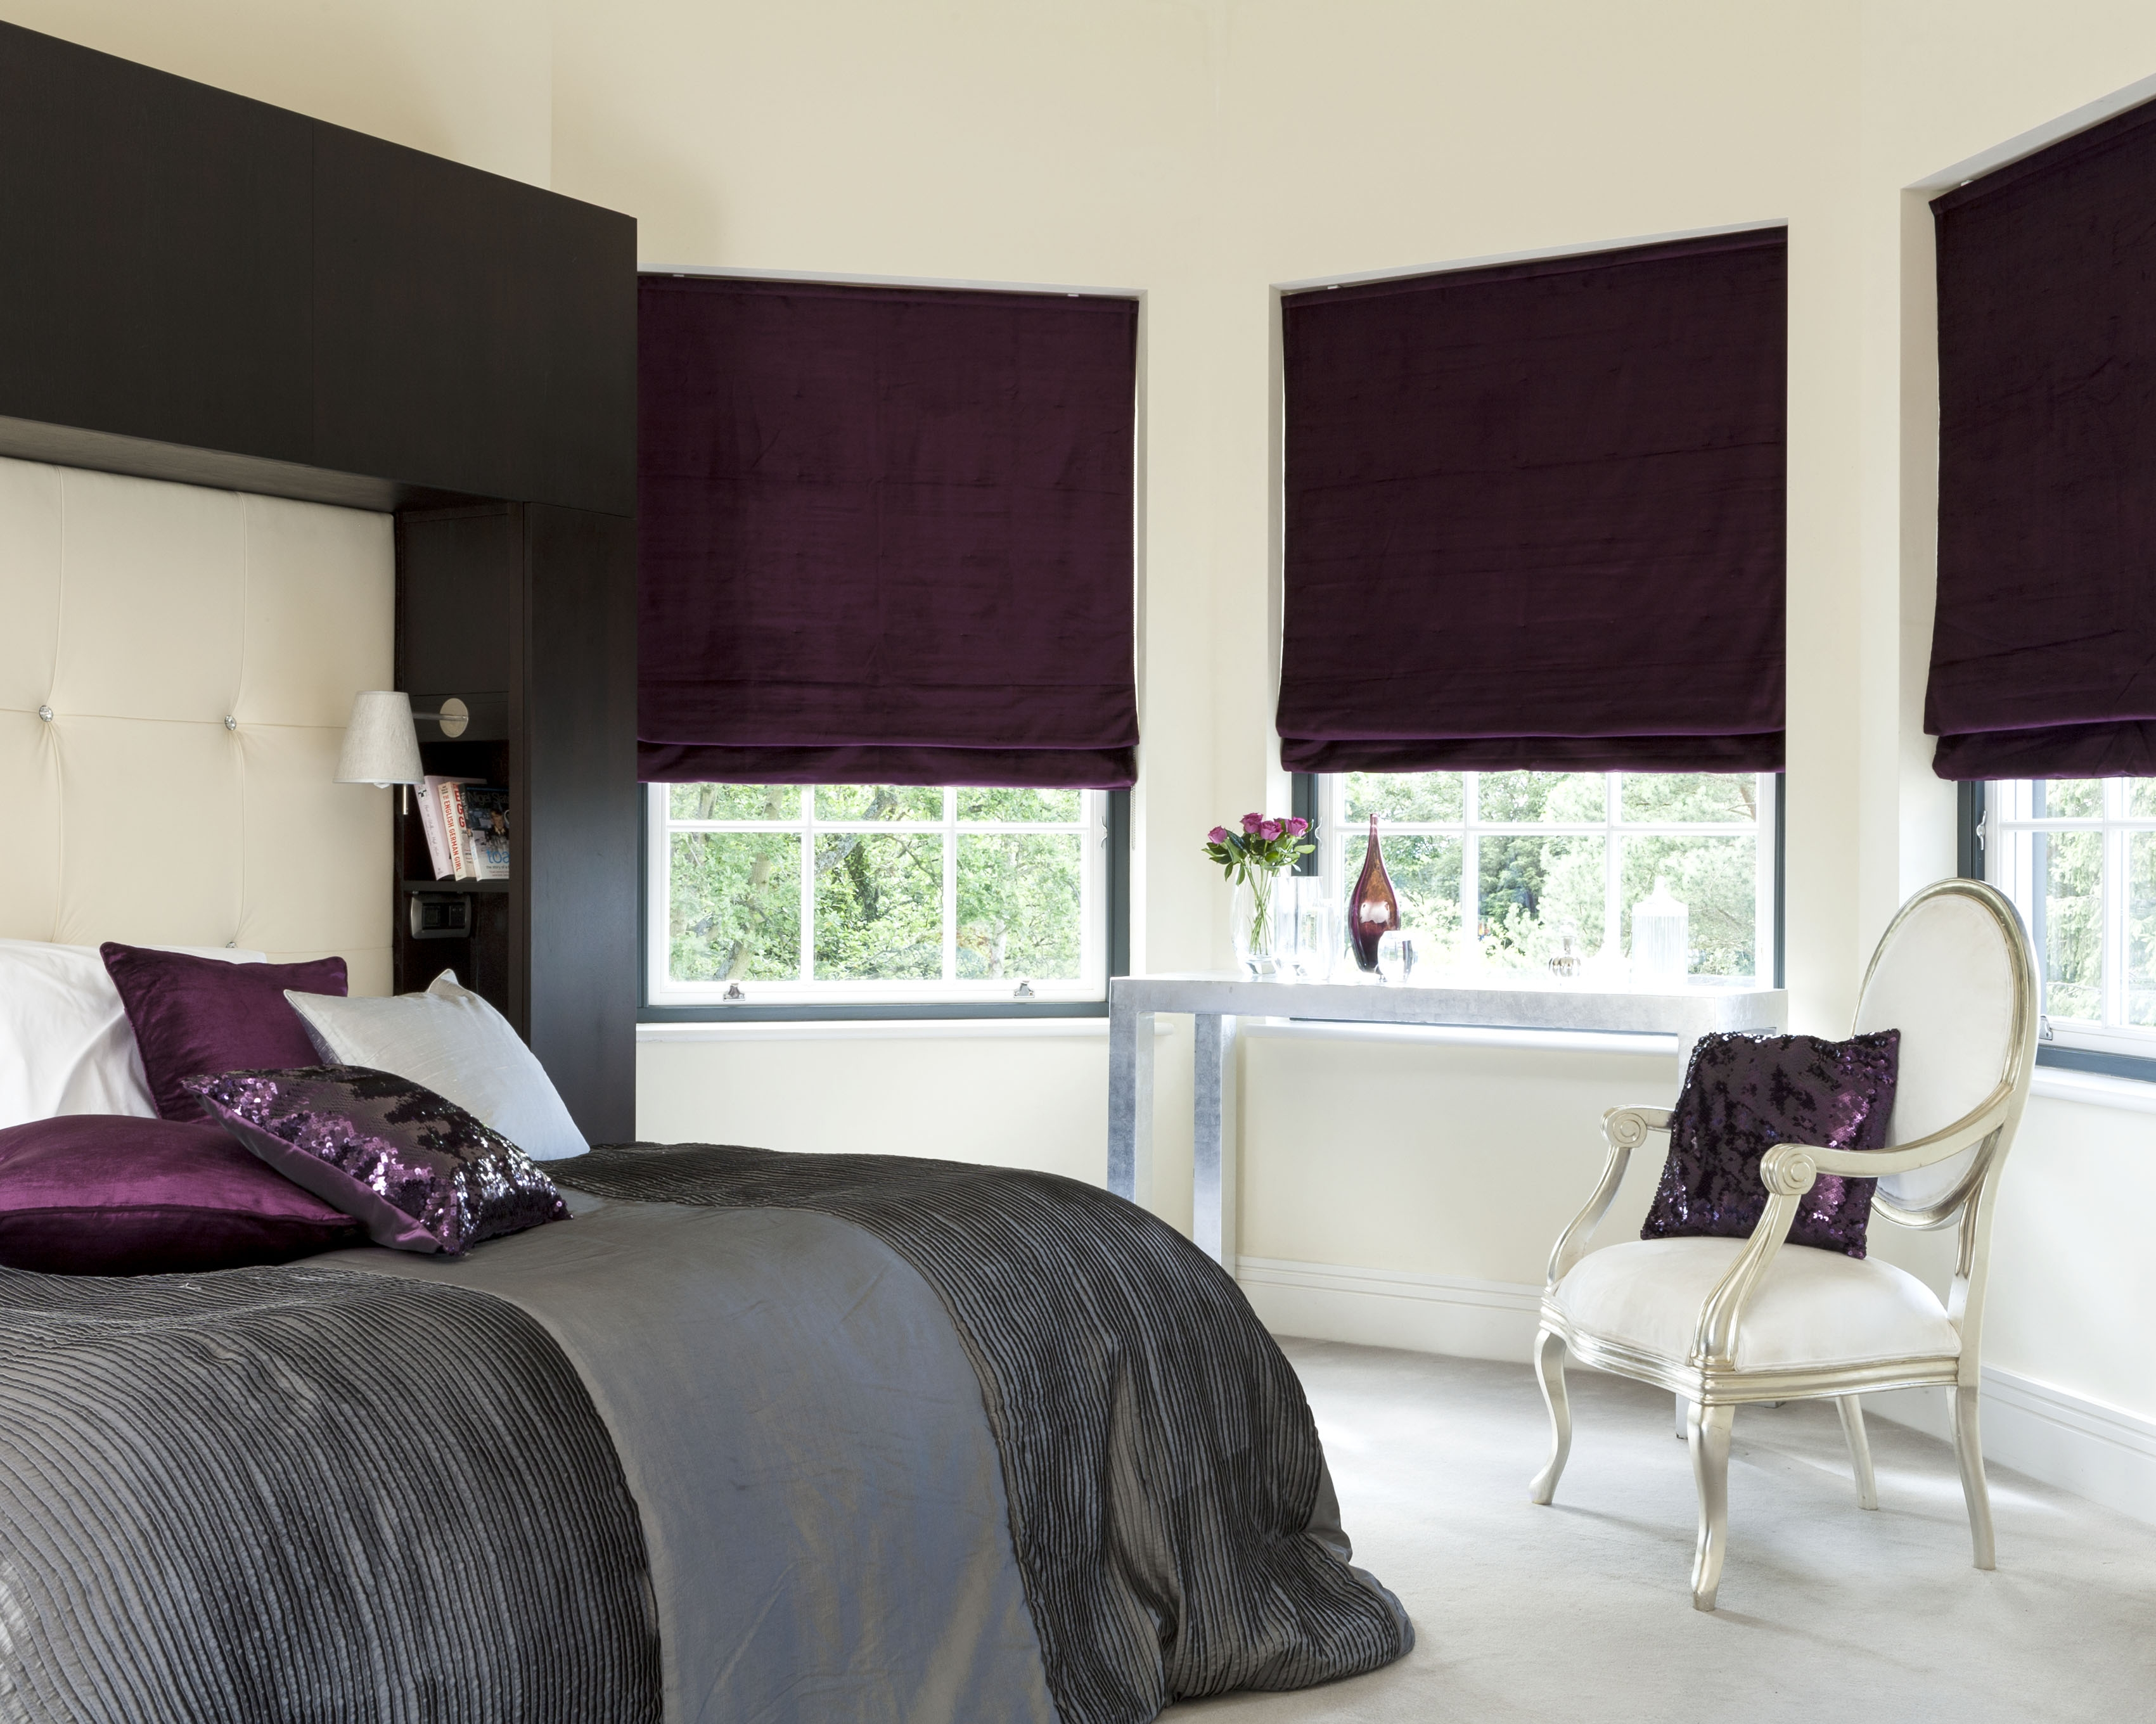 Cheapest Blinds Uk Ltd Cream Stripe Roman Blinds Throughout Striped Roman Blinds (Image 4 of 15)